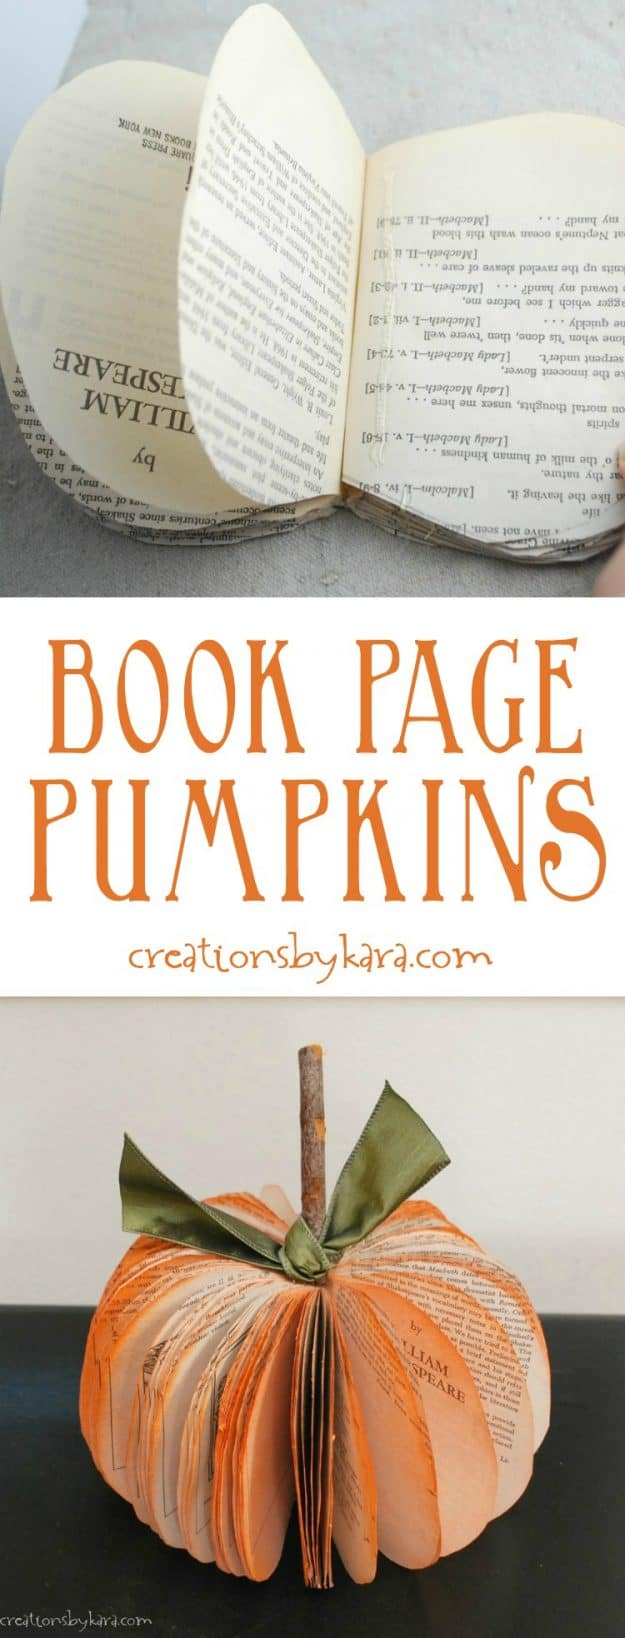 book page pumpkin tutorial collage